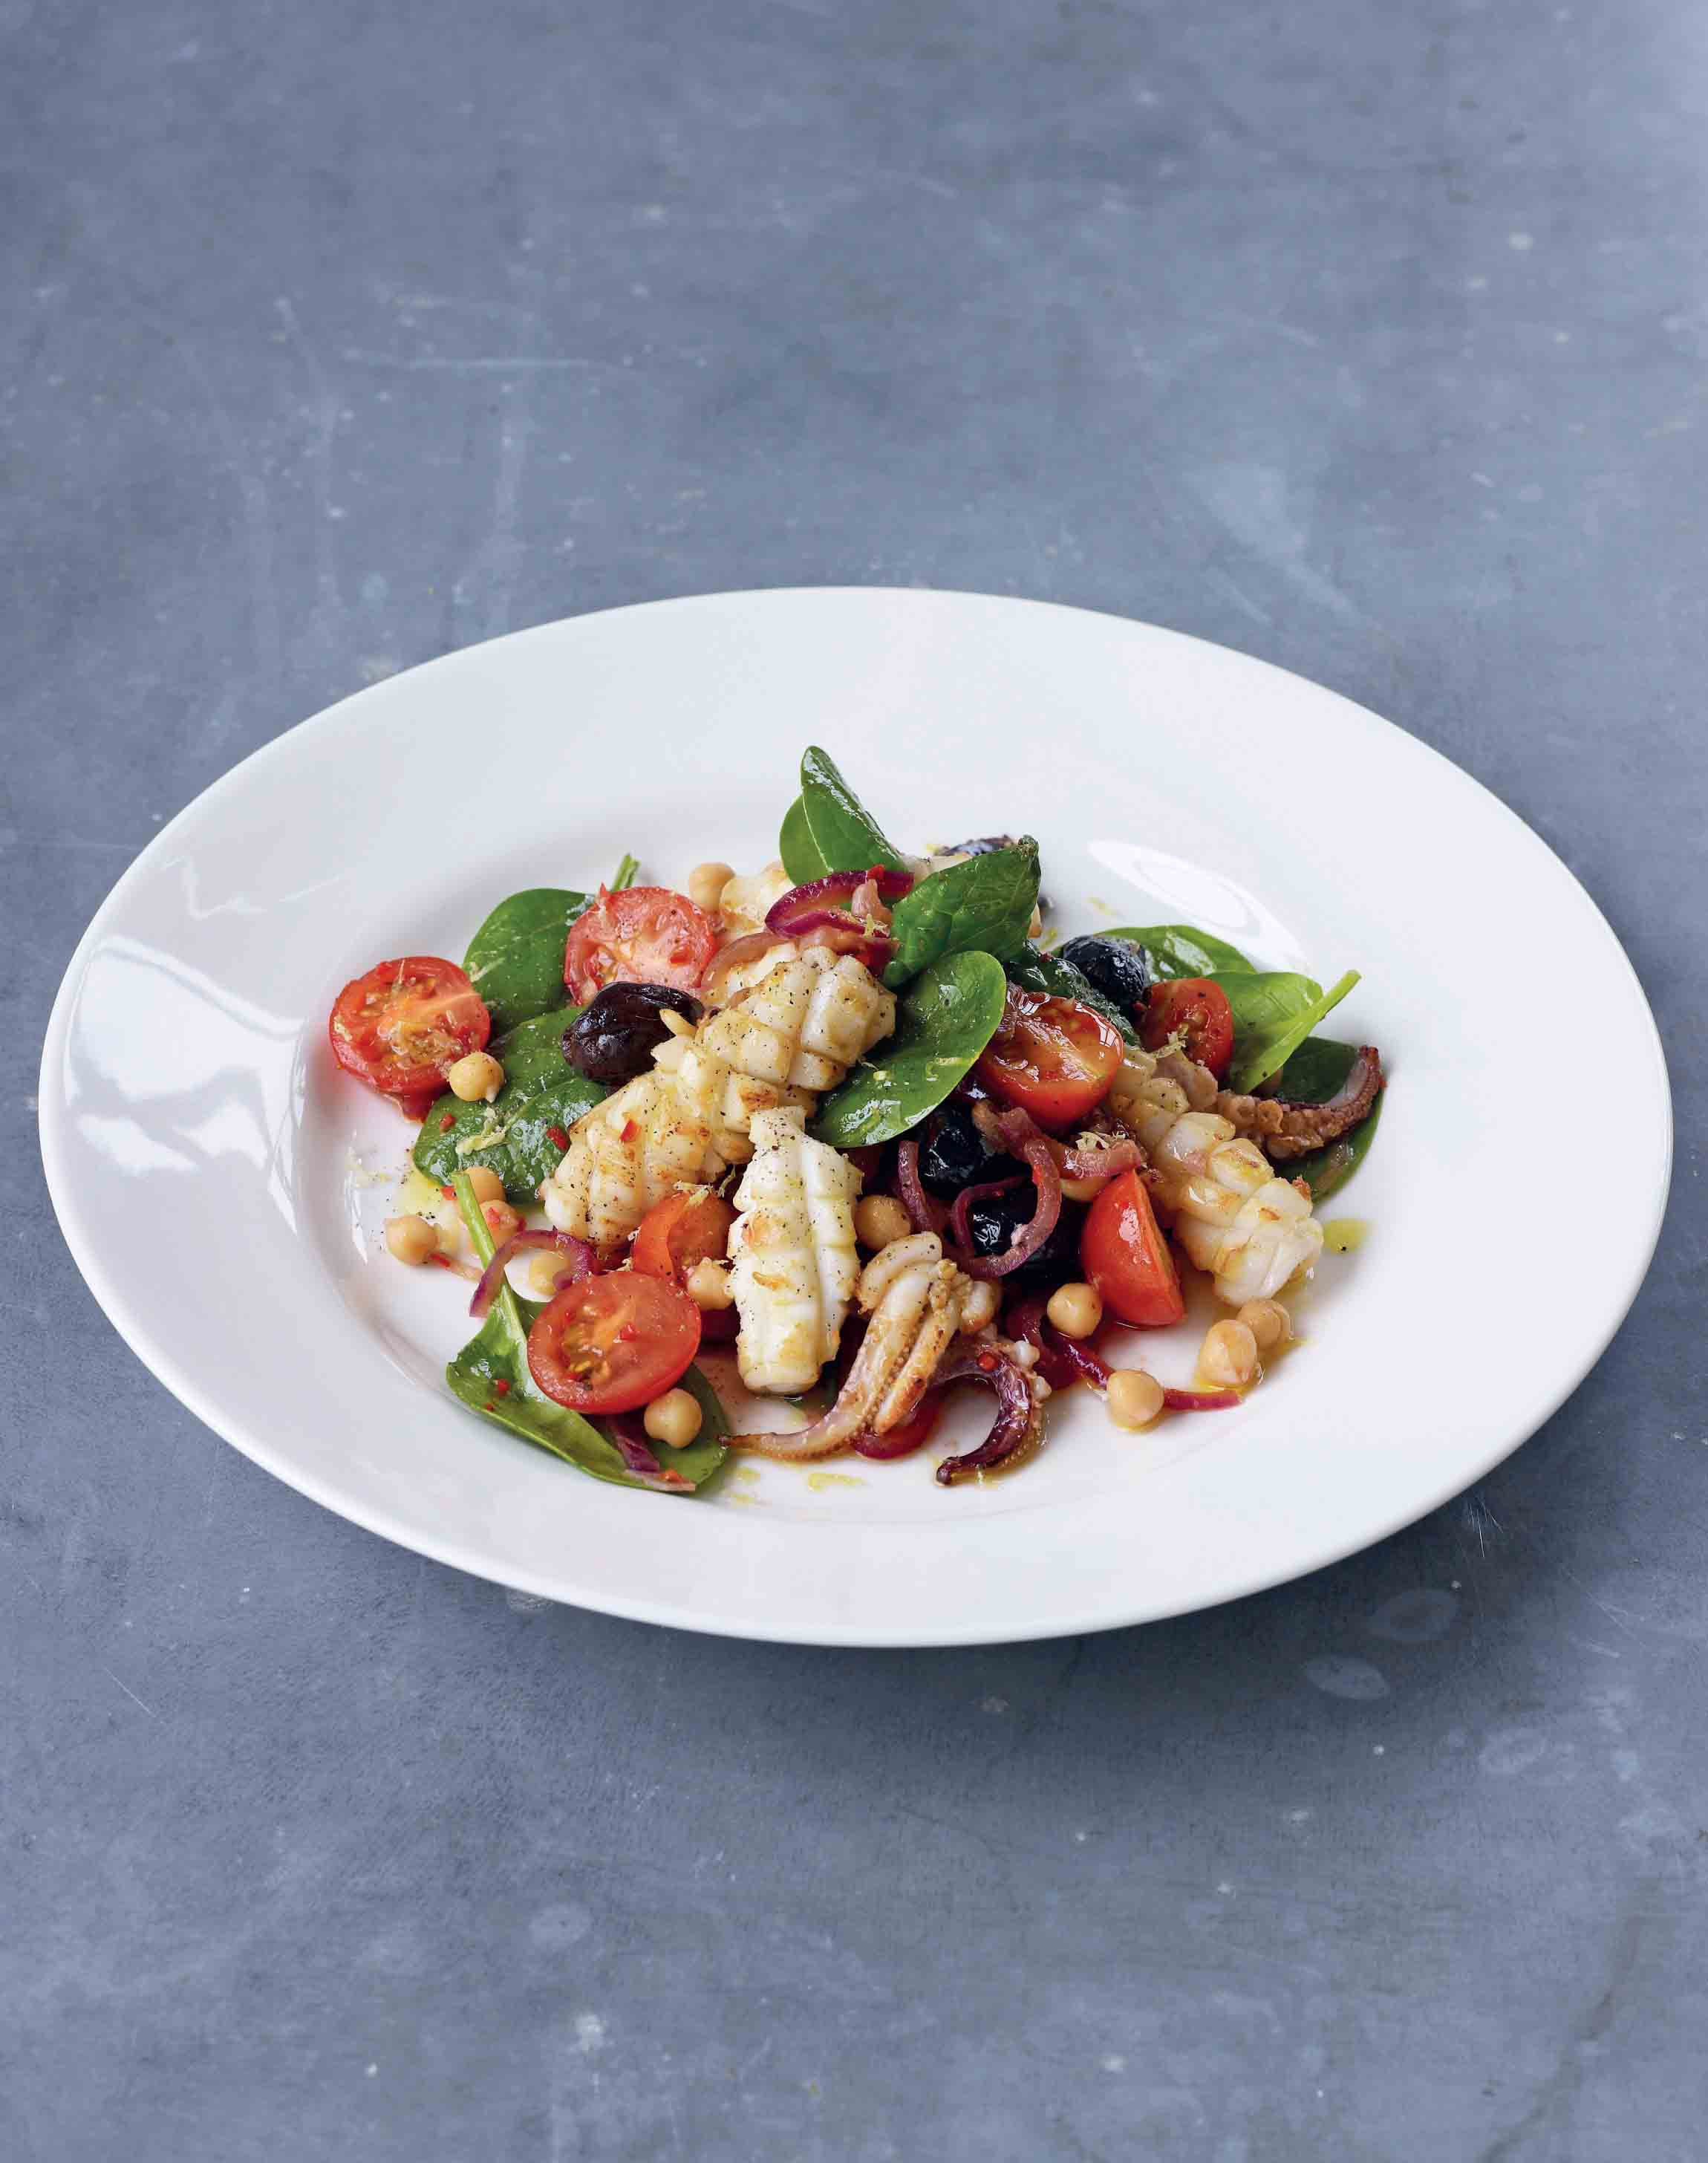 Pan-fried squid with chickpea, tomato, olive and chilli salad